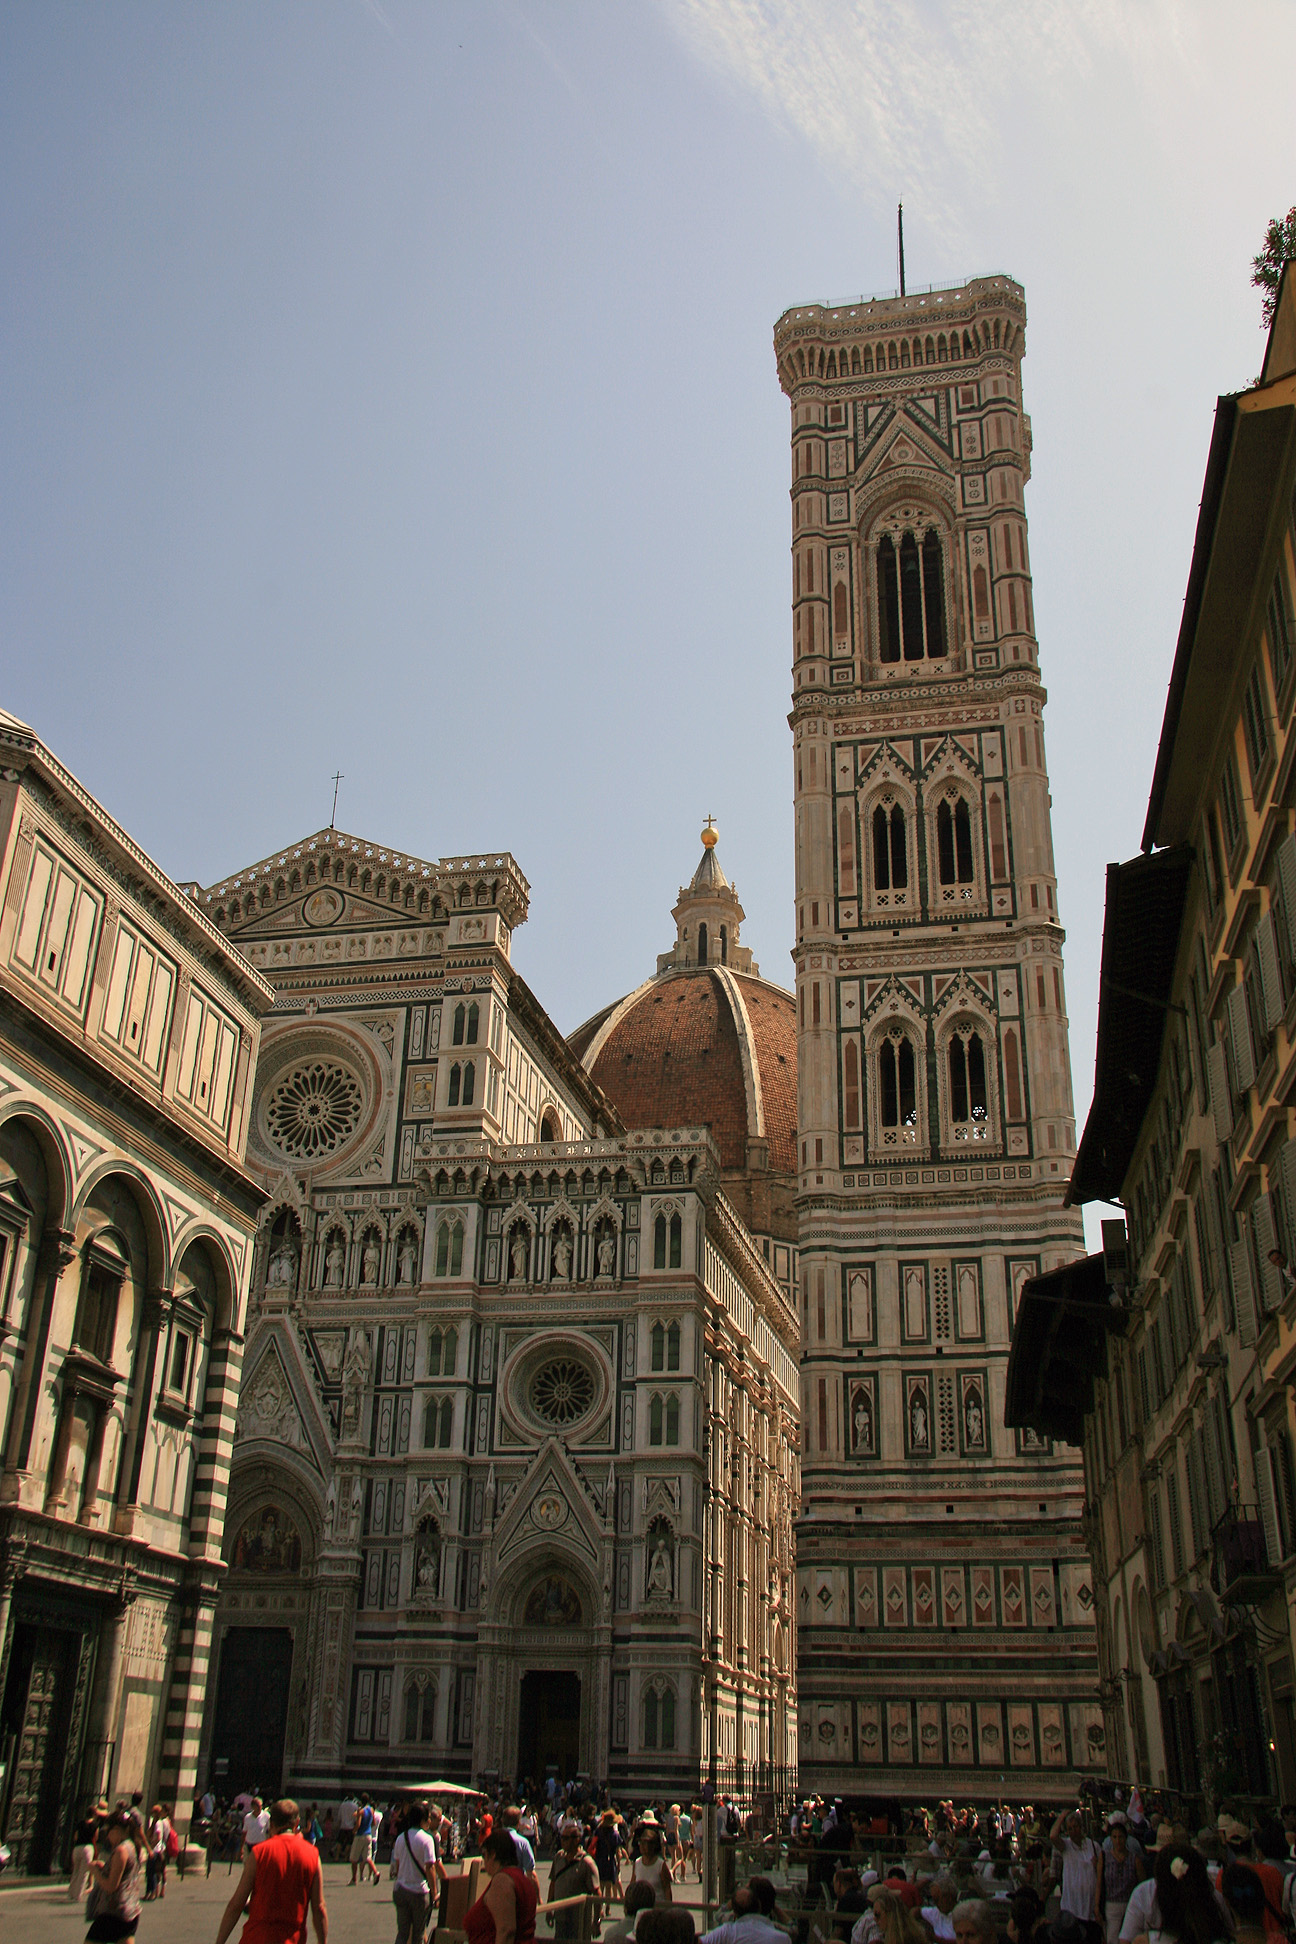 Cathedral complex on the Piazza del Duomo.